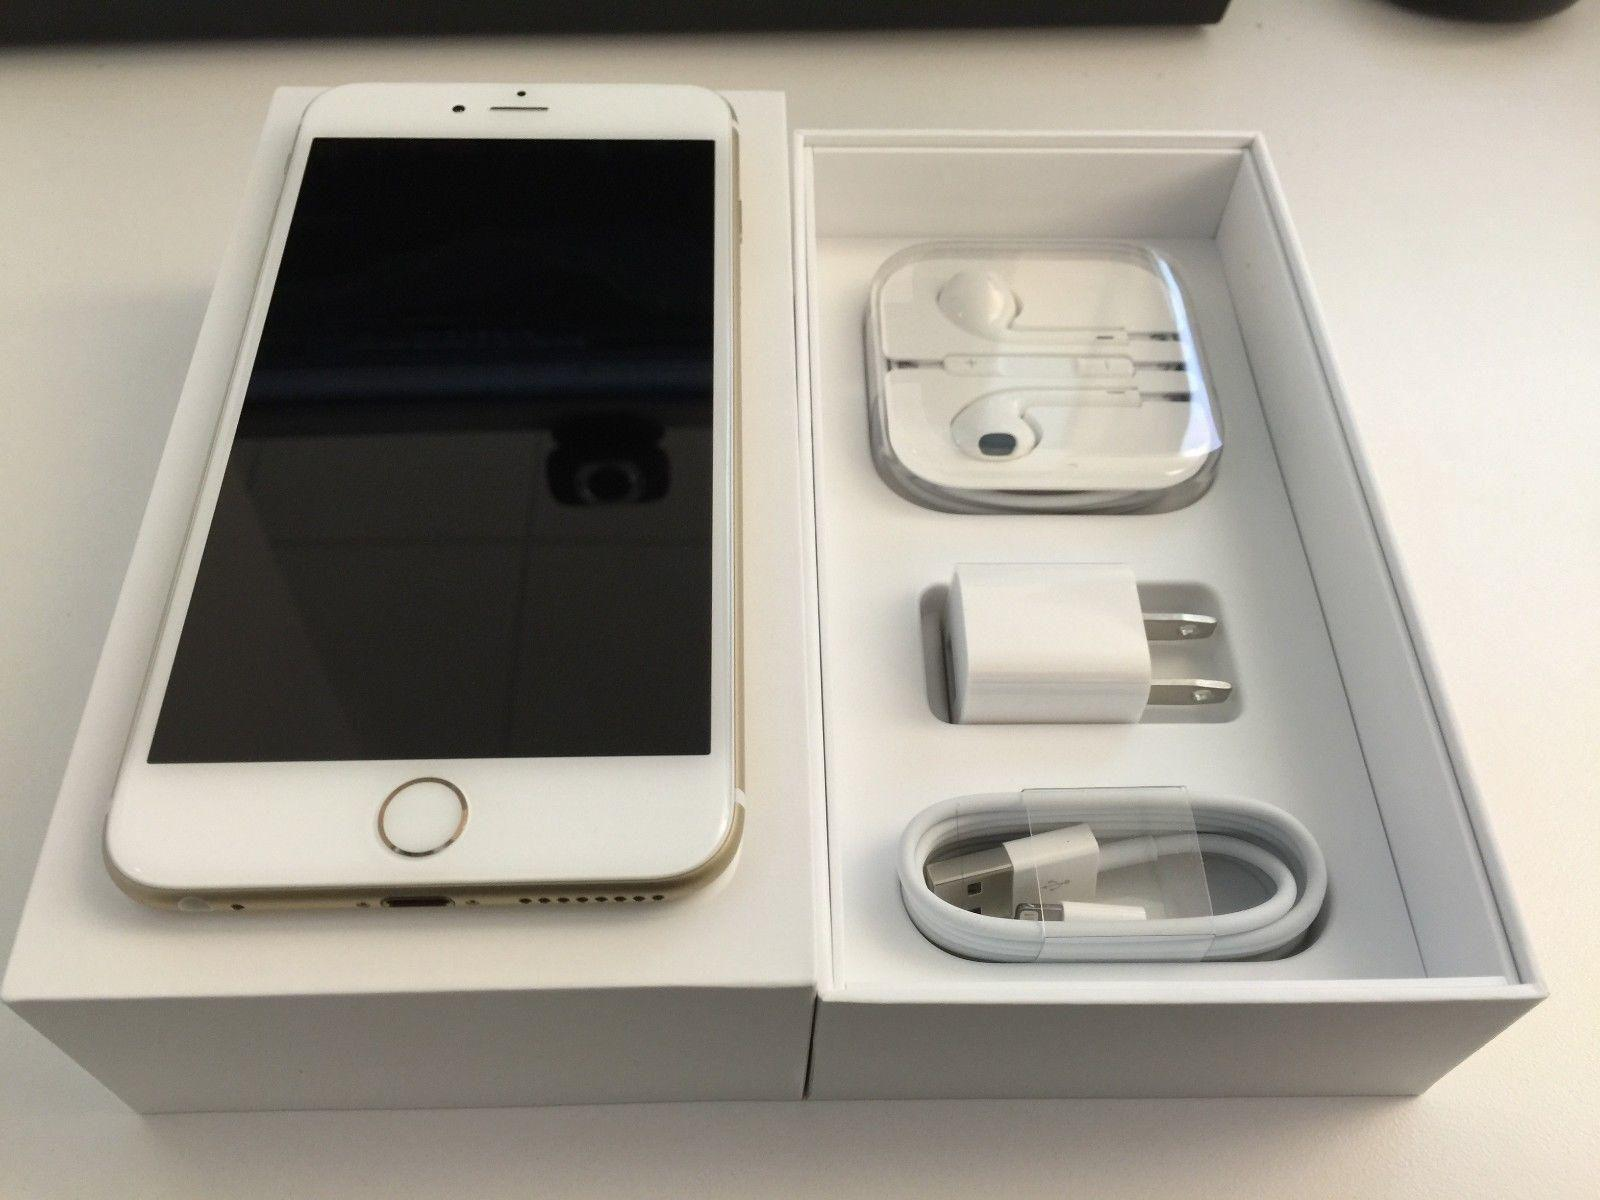 iPhone 7 Plus 128GB Gold - T-Mobile (contract free) - Apple - MN5L2LL/A